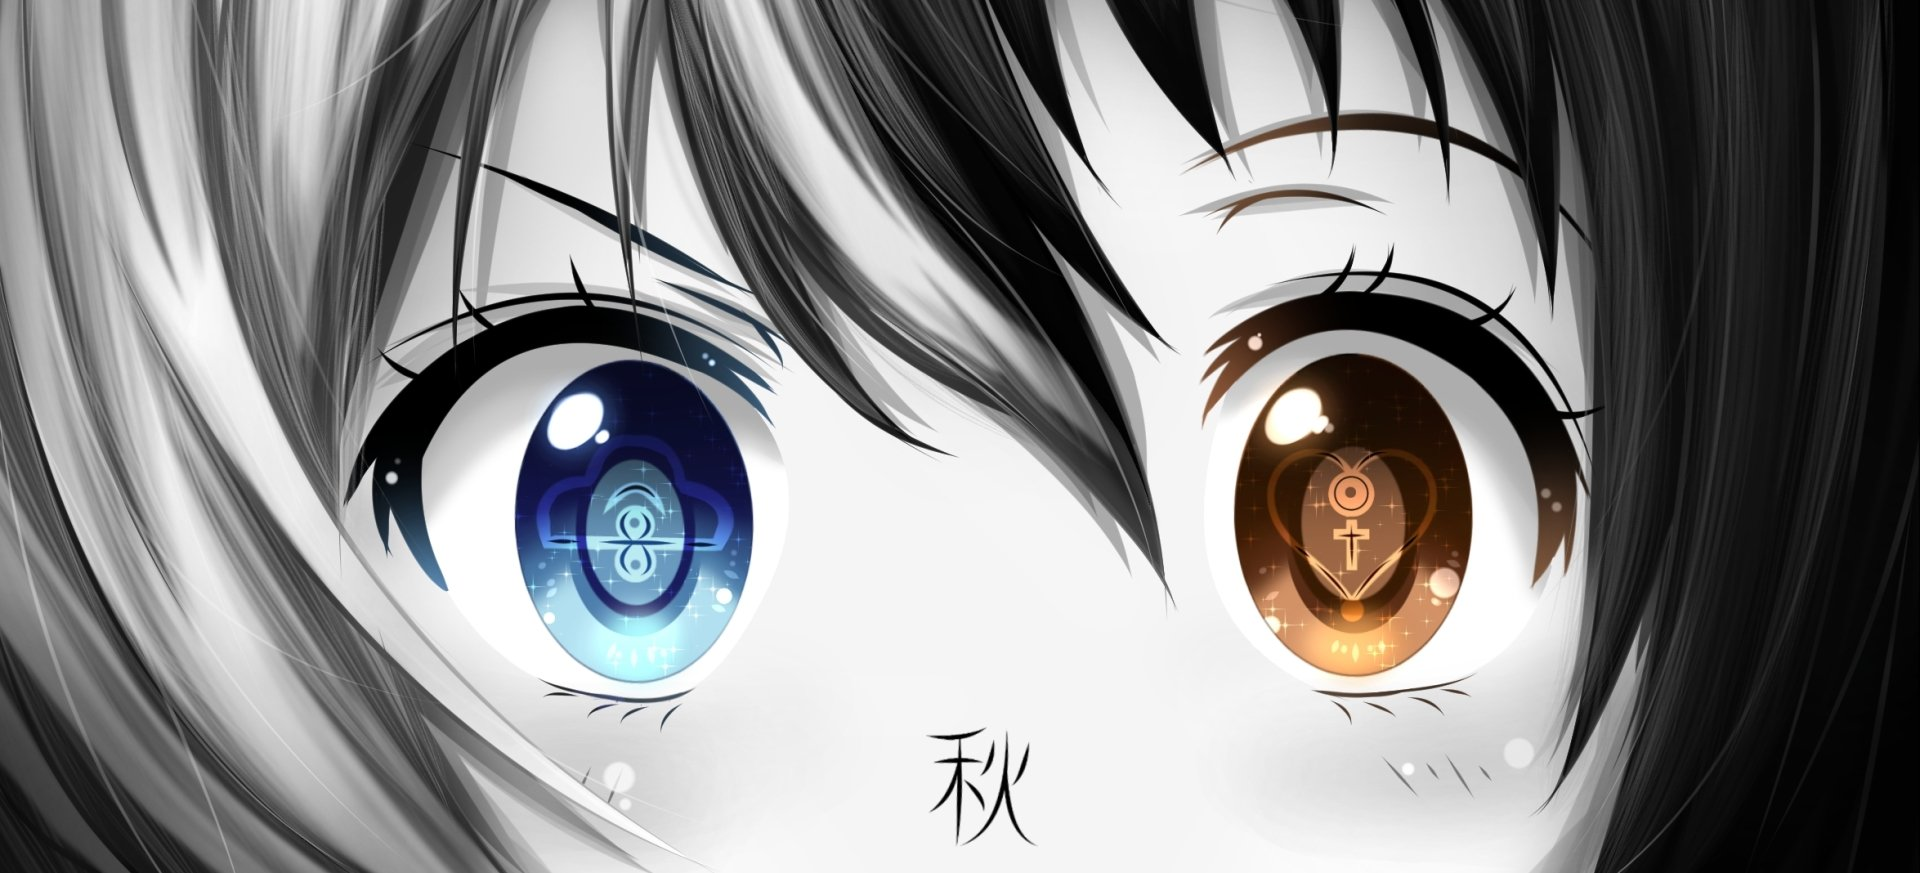 Wallpapers ID:816526